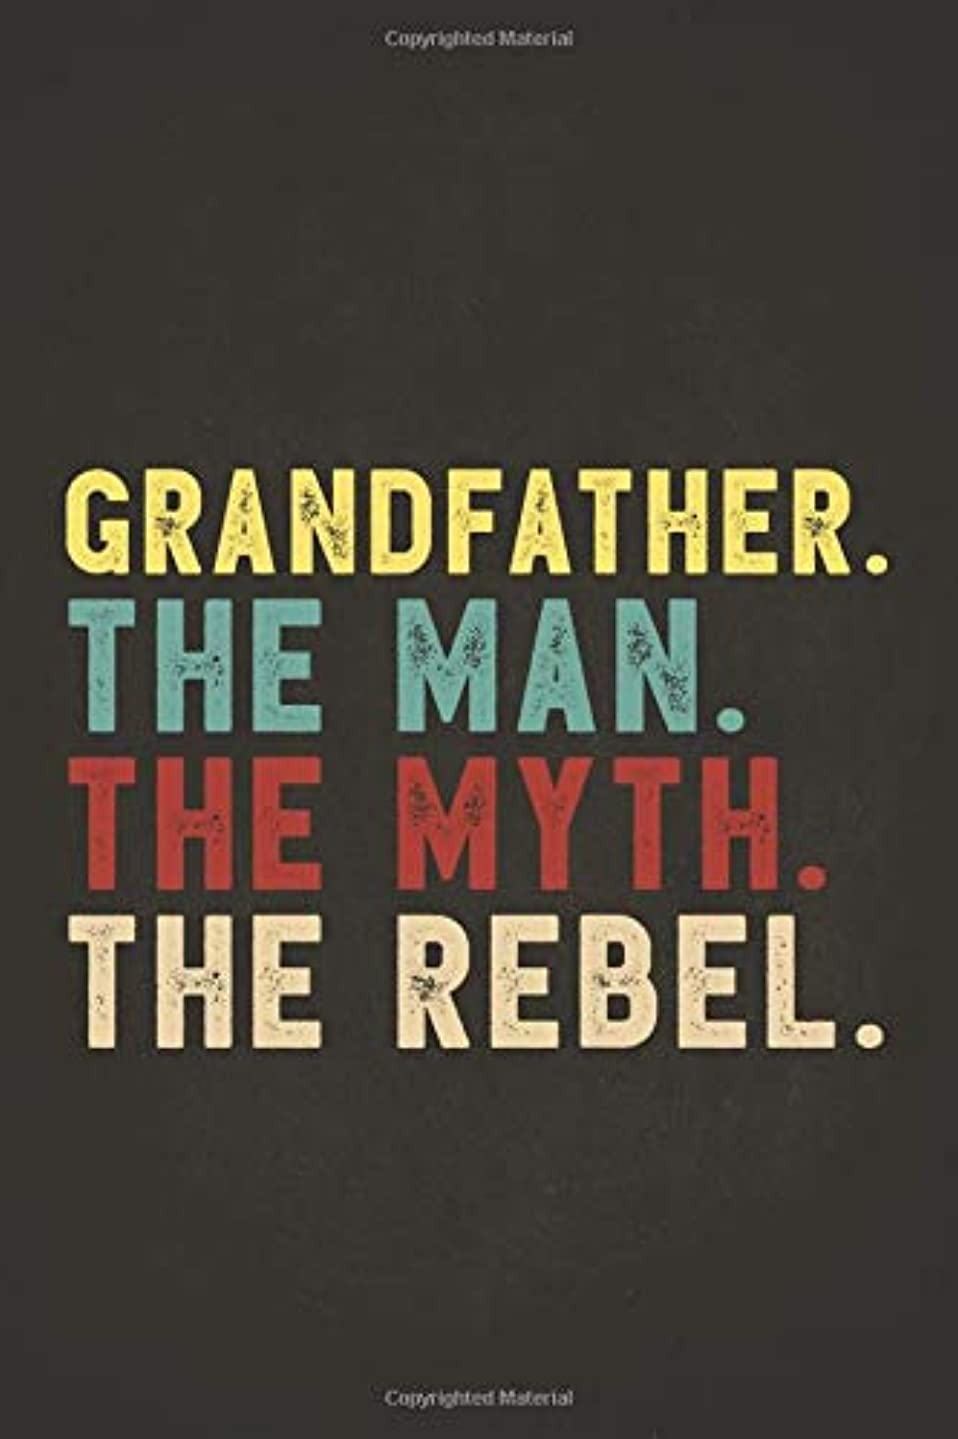 Funny Rebel Family Gifts: Grandfather the Man the Myth the Rebel Shirt Bad Influence Legend Composition Notebook Lightly Lined Pages Daily Journal ... best ever apparel for aged man & woman 6x9